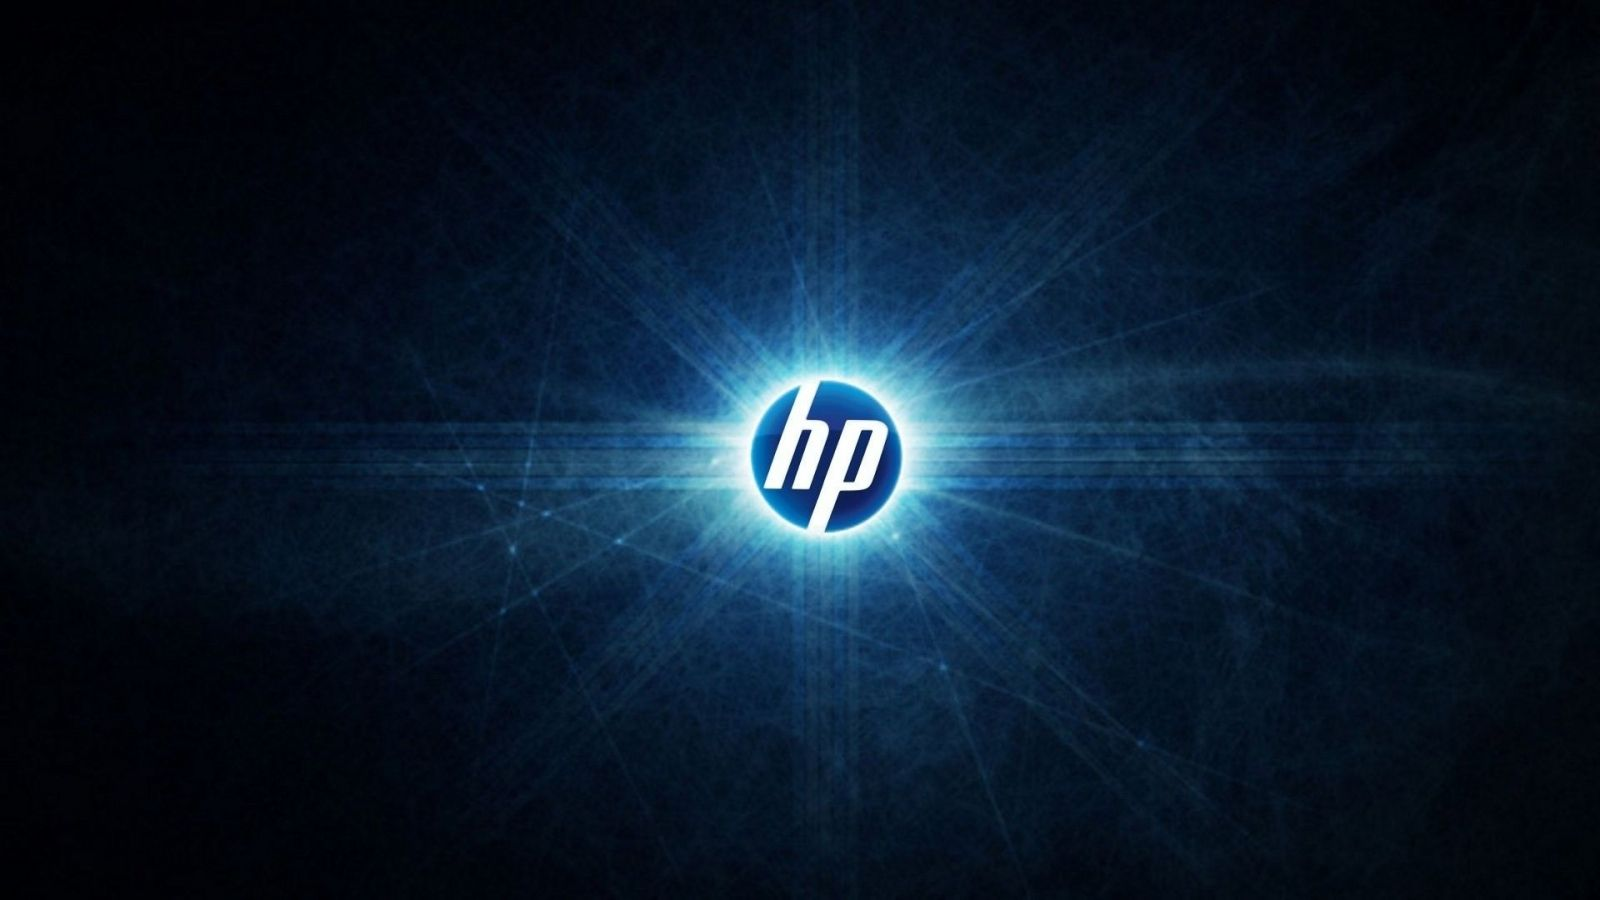 Windows 10 Oem Wallpaper For Hp Laptops 05 0f 10 Dark Background With 3d Logo Hd Wallpapers Wallpapers Download High Resolution Wallpapers Wallpaper Windows 10 Wallpaper Apple Watch Faces